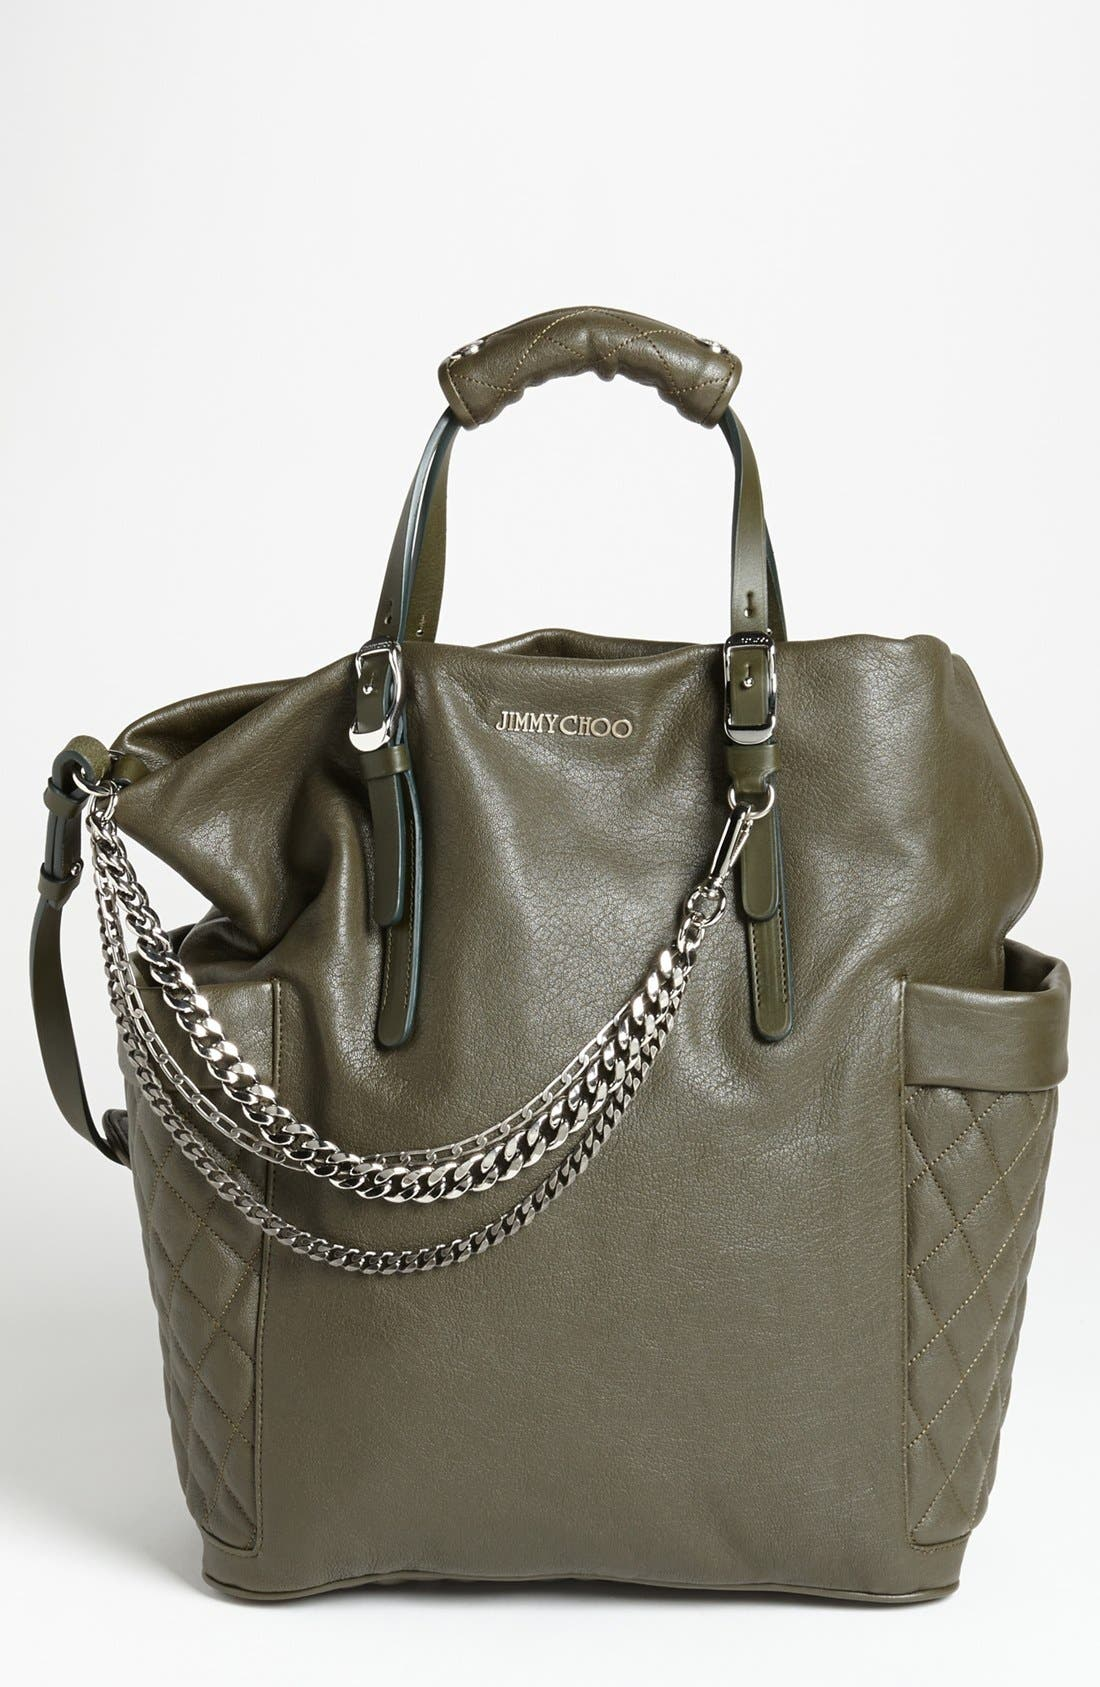 Alternate Image 1 Selected - Jimmy Choo 'Blare' Leather Tote